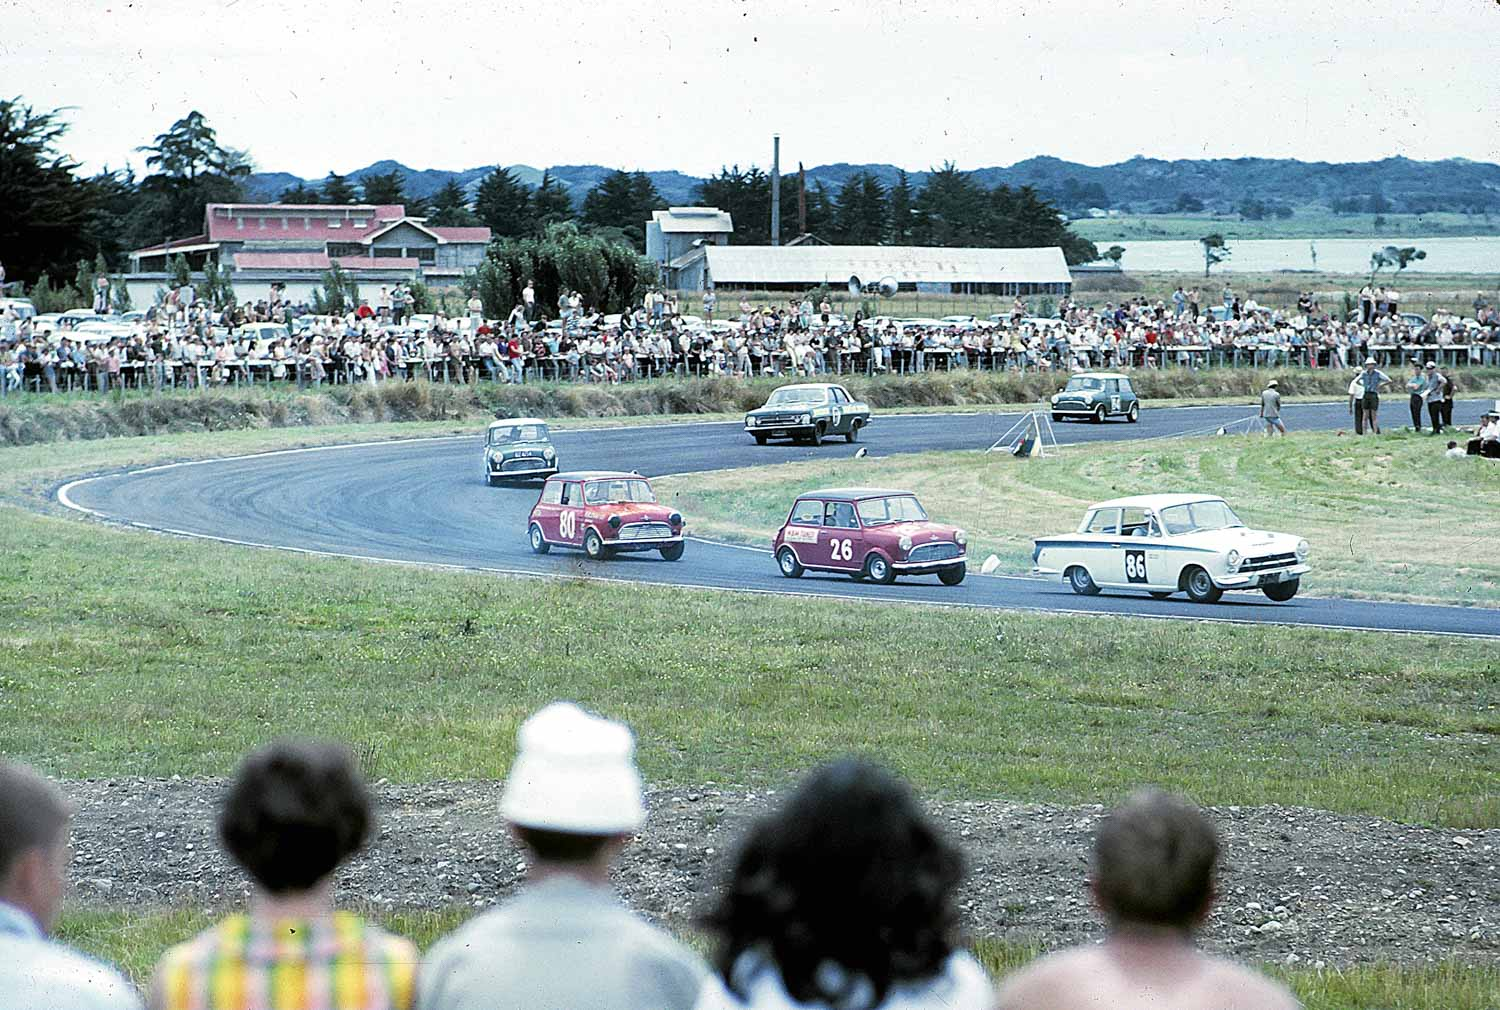 A Cortina leads a gaggle of Minis and an HR Holden